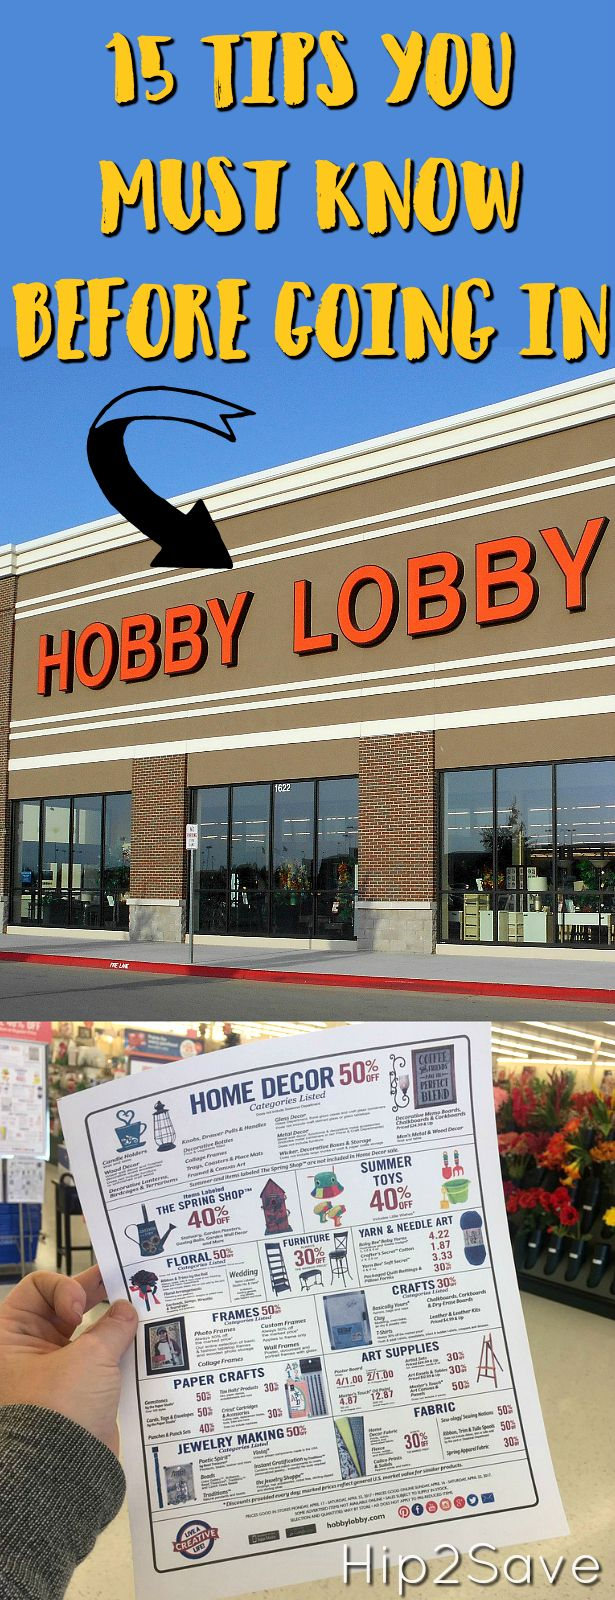 15 hobby lobby savings secrets you must know to save big